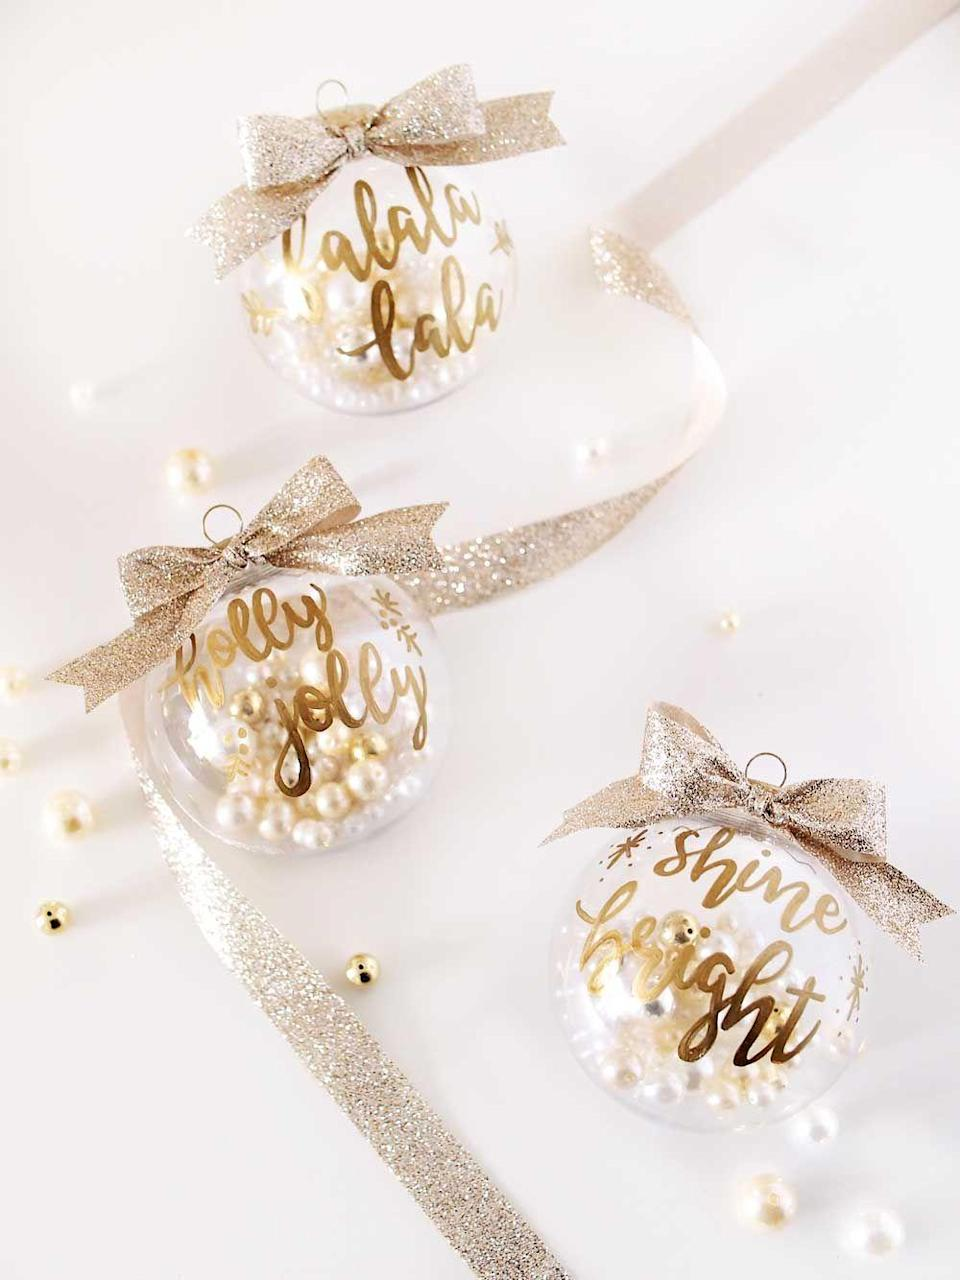 "<p>Don't worry: You don't need impressive calligraphy skills to create these beauties at home. This blogger's tutorial makes it easy to replicate her fancy designs.</p><p><strong>Get the tutorial at <a href=""http://www.tingandthings.com/2017/12/diy-gold-hand-lettering-christmas-ornaments.html"" rel=""nofollow noopener"" target=""_blank"" data-ylk=""slk:Ting and Things"" class=""link rapid-noclick-resp"">Ting and Things</a>.</strong></p><p><strong><a class=""link rapid-noclick-resp"" href=""https://www.amazon.com/Sharpie-Oil-Based-Markers-Assorted-Metallic/dp/B000I0VMJU/?tag=syn-yahoo-20&ascsubtag=%5Bartid%7C10050.g.1070%5Bsrc%7Cyahoo-us"" rel=""nofollow noopener"" target=""_blank"" data-ylk=""slk:SHOP GOLD MARKERS"">SHOP GOLD MARKERS</a><br></strong></p>"